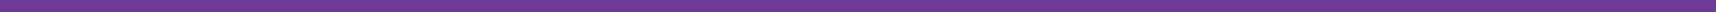 blue-bar-purple